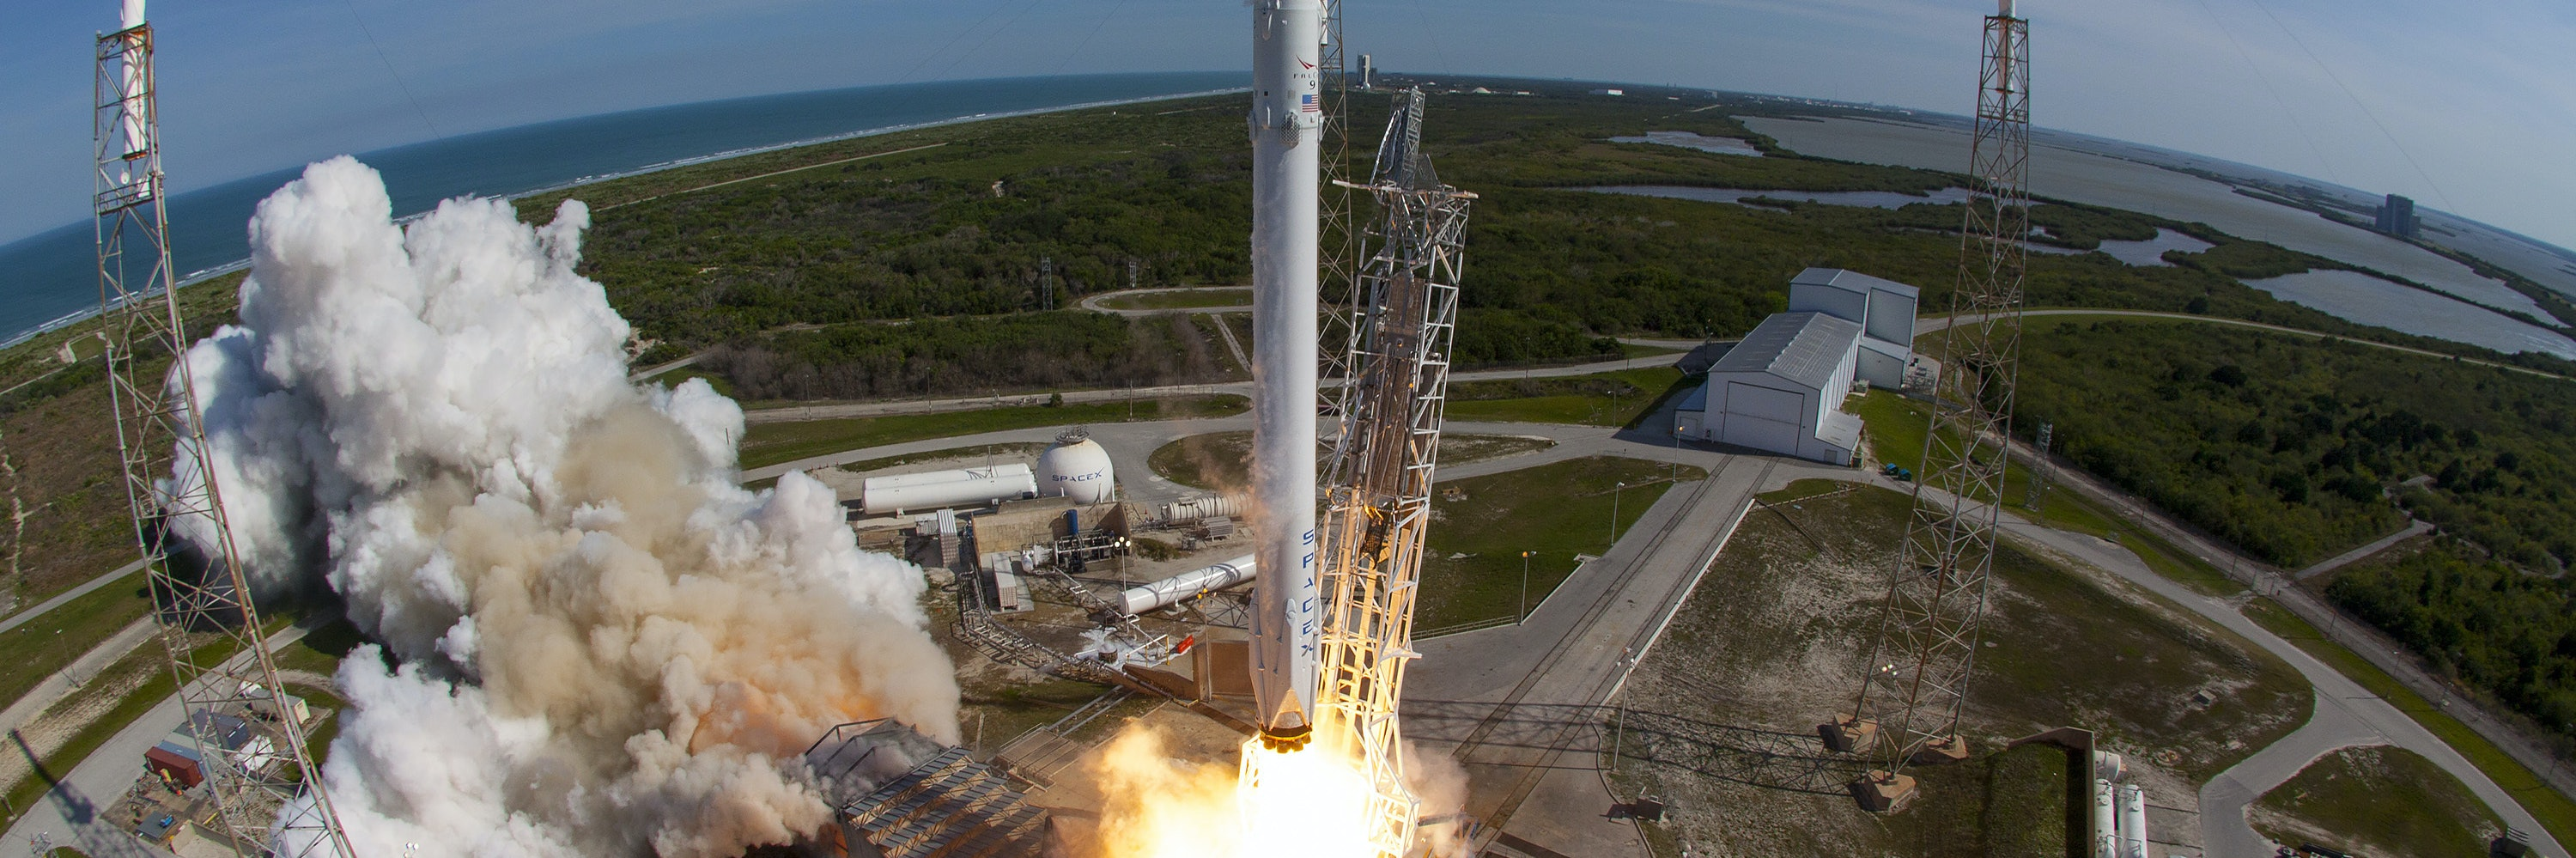 In this handout provided by the National Aeronautics and Space Administration (NASA), SpaceXs Falcon 9 rocket and Dragon spacecraft lift off from Launch Complex 40 at the Cape Canaveral Air Force Station for their eighth official Commercial Resupply (CRS) mission on April 8, 2016 in Cape Canaveral, Florida.